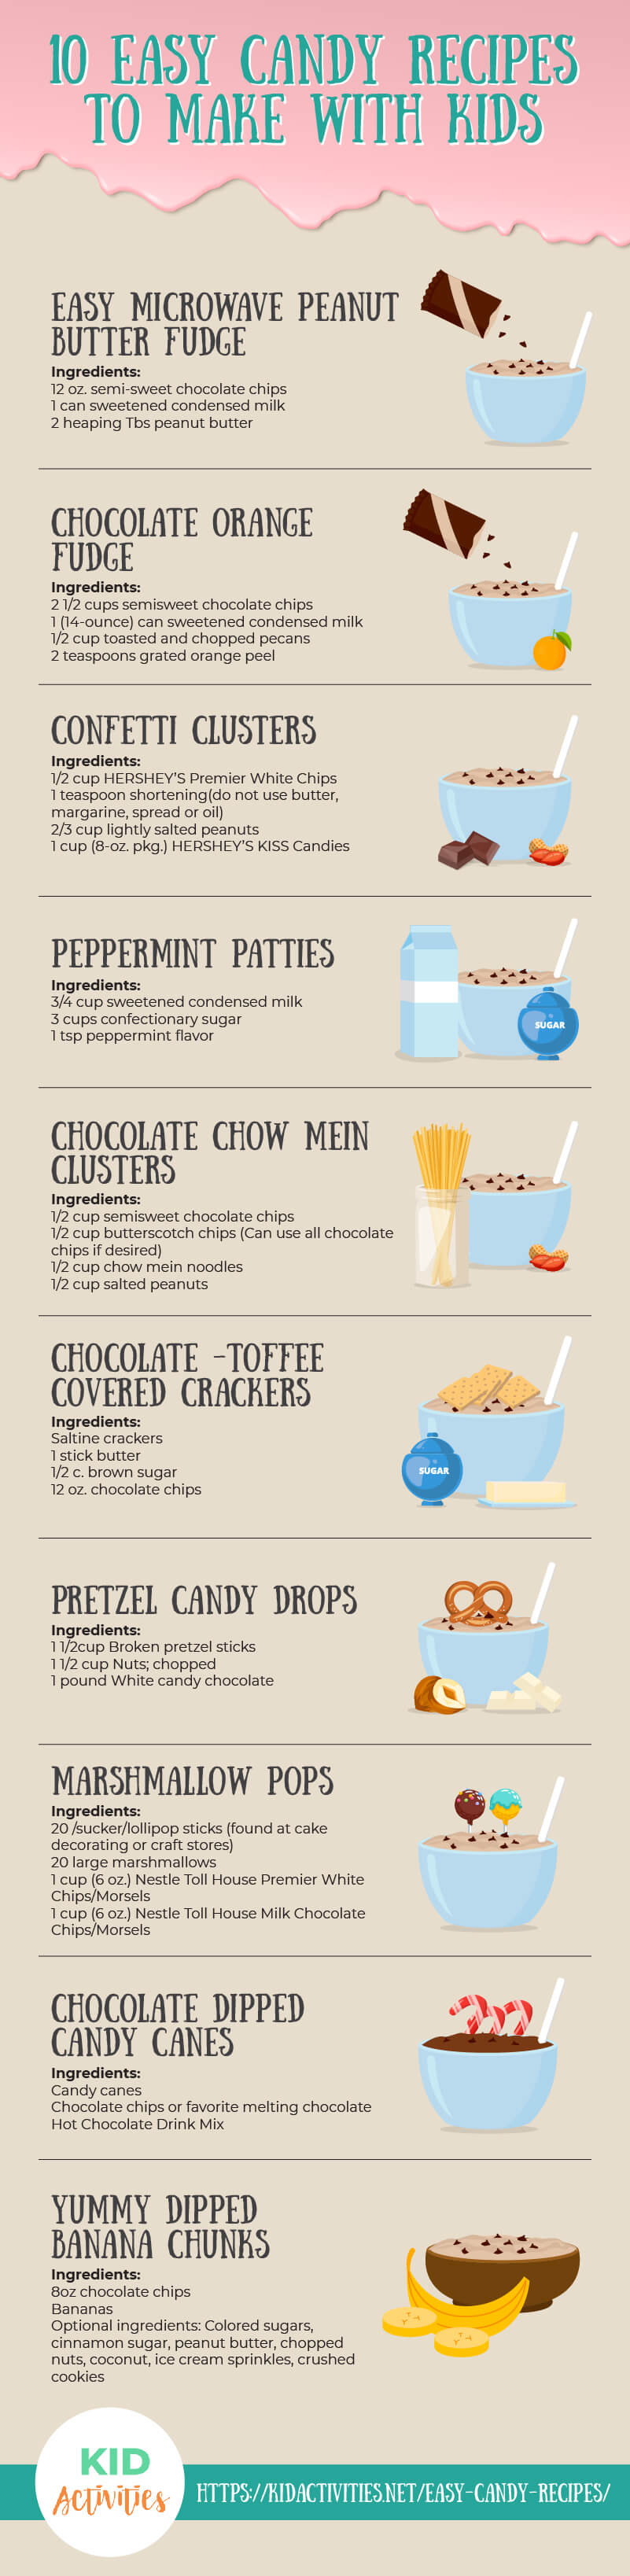 An infographic with 10 candy recipes to make with kids including what ingredients will be needed.